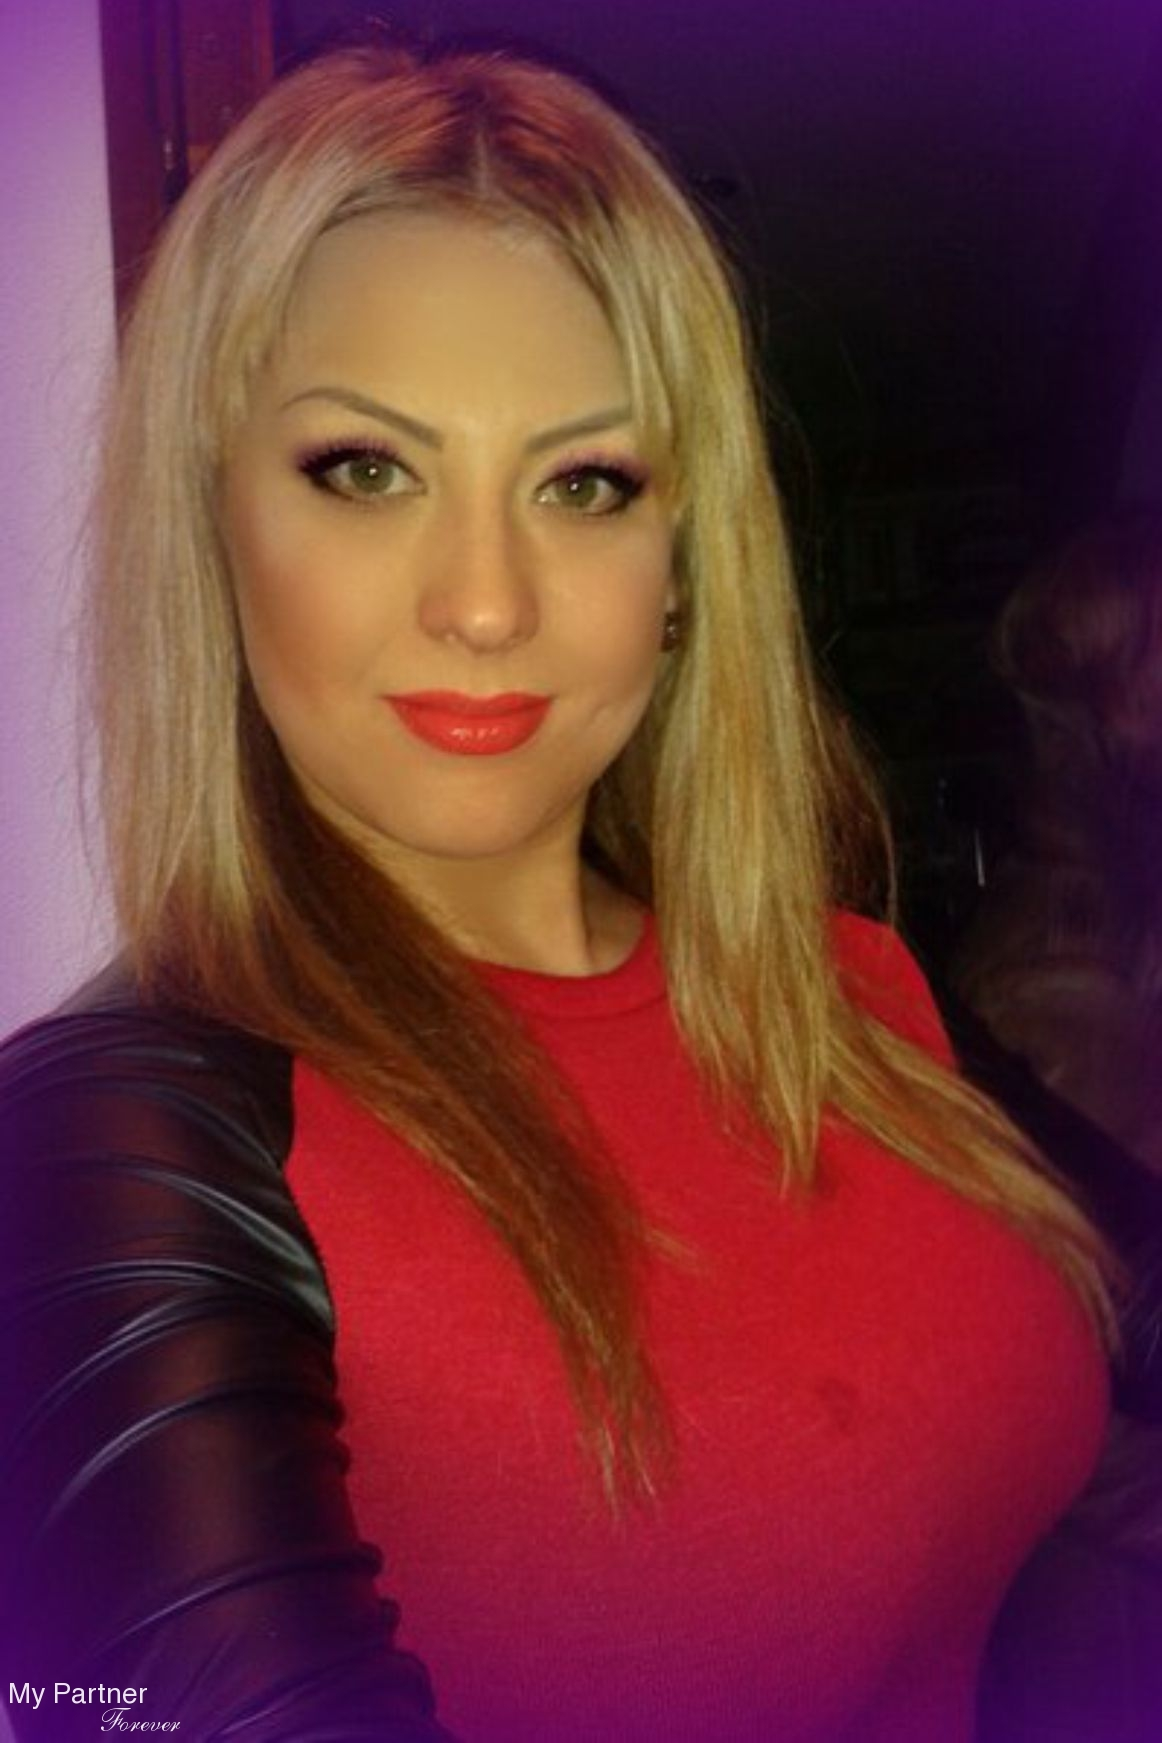 Dating sites free naked females